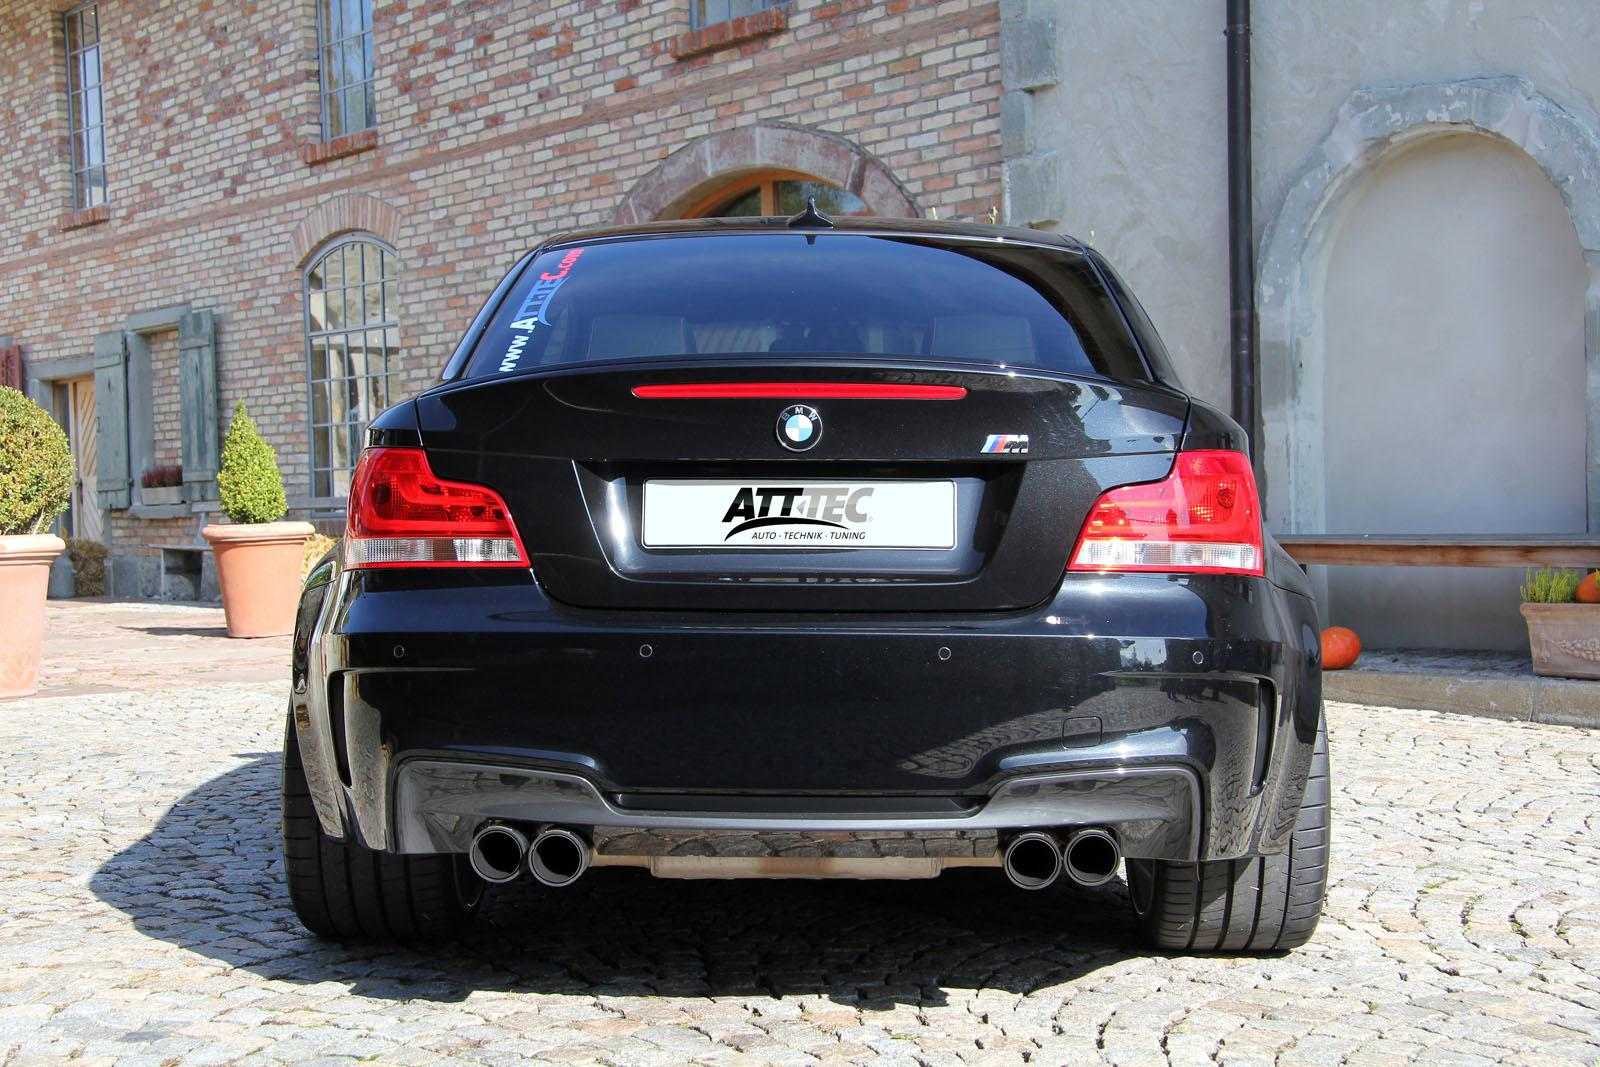 att tec bmw 1 series m coupe car tuning styling. Black Bedroom Furniture Sets. Home Design Ideas